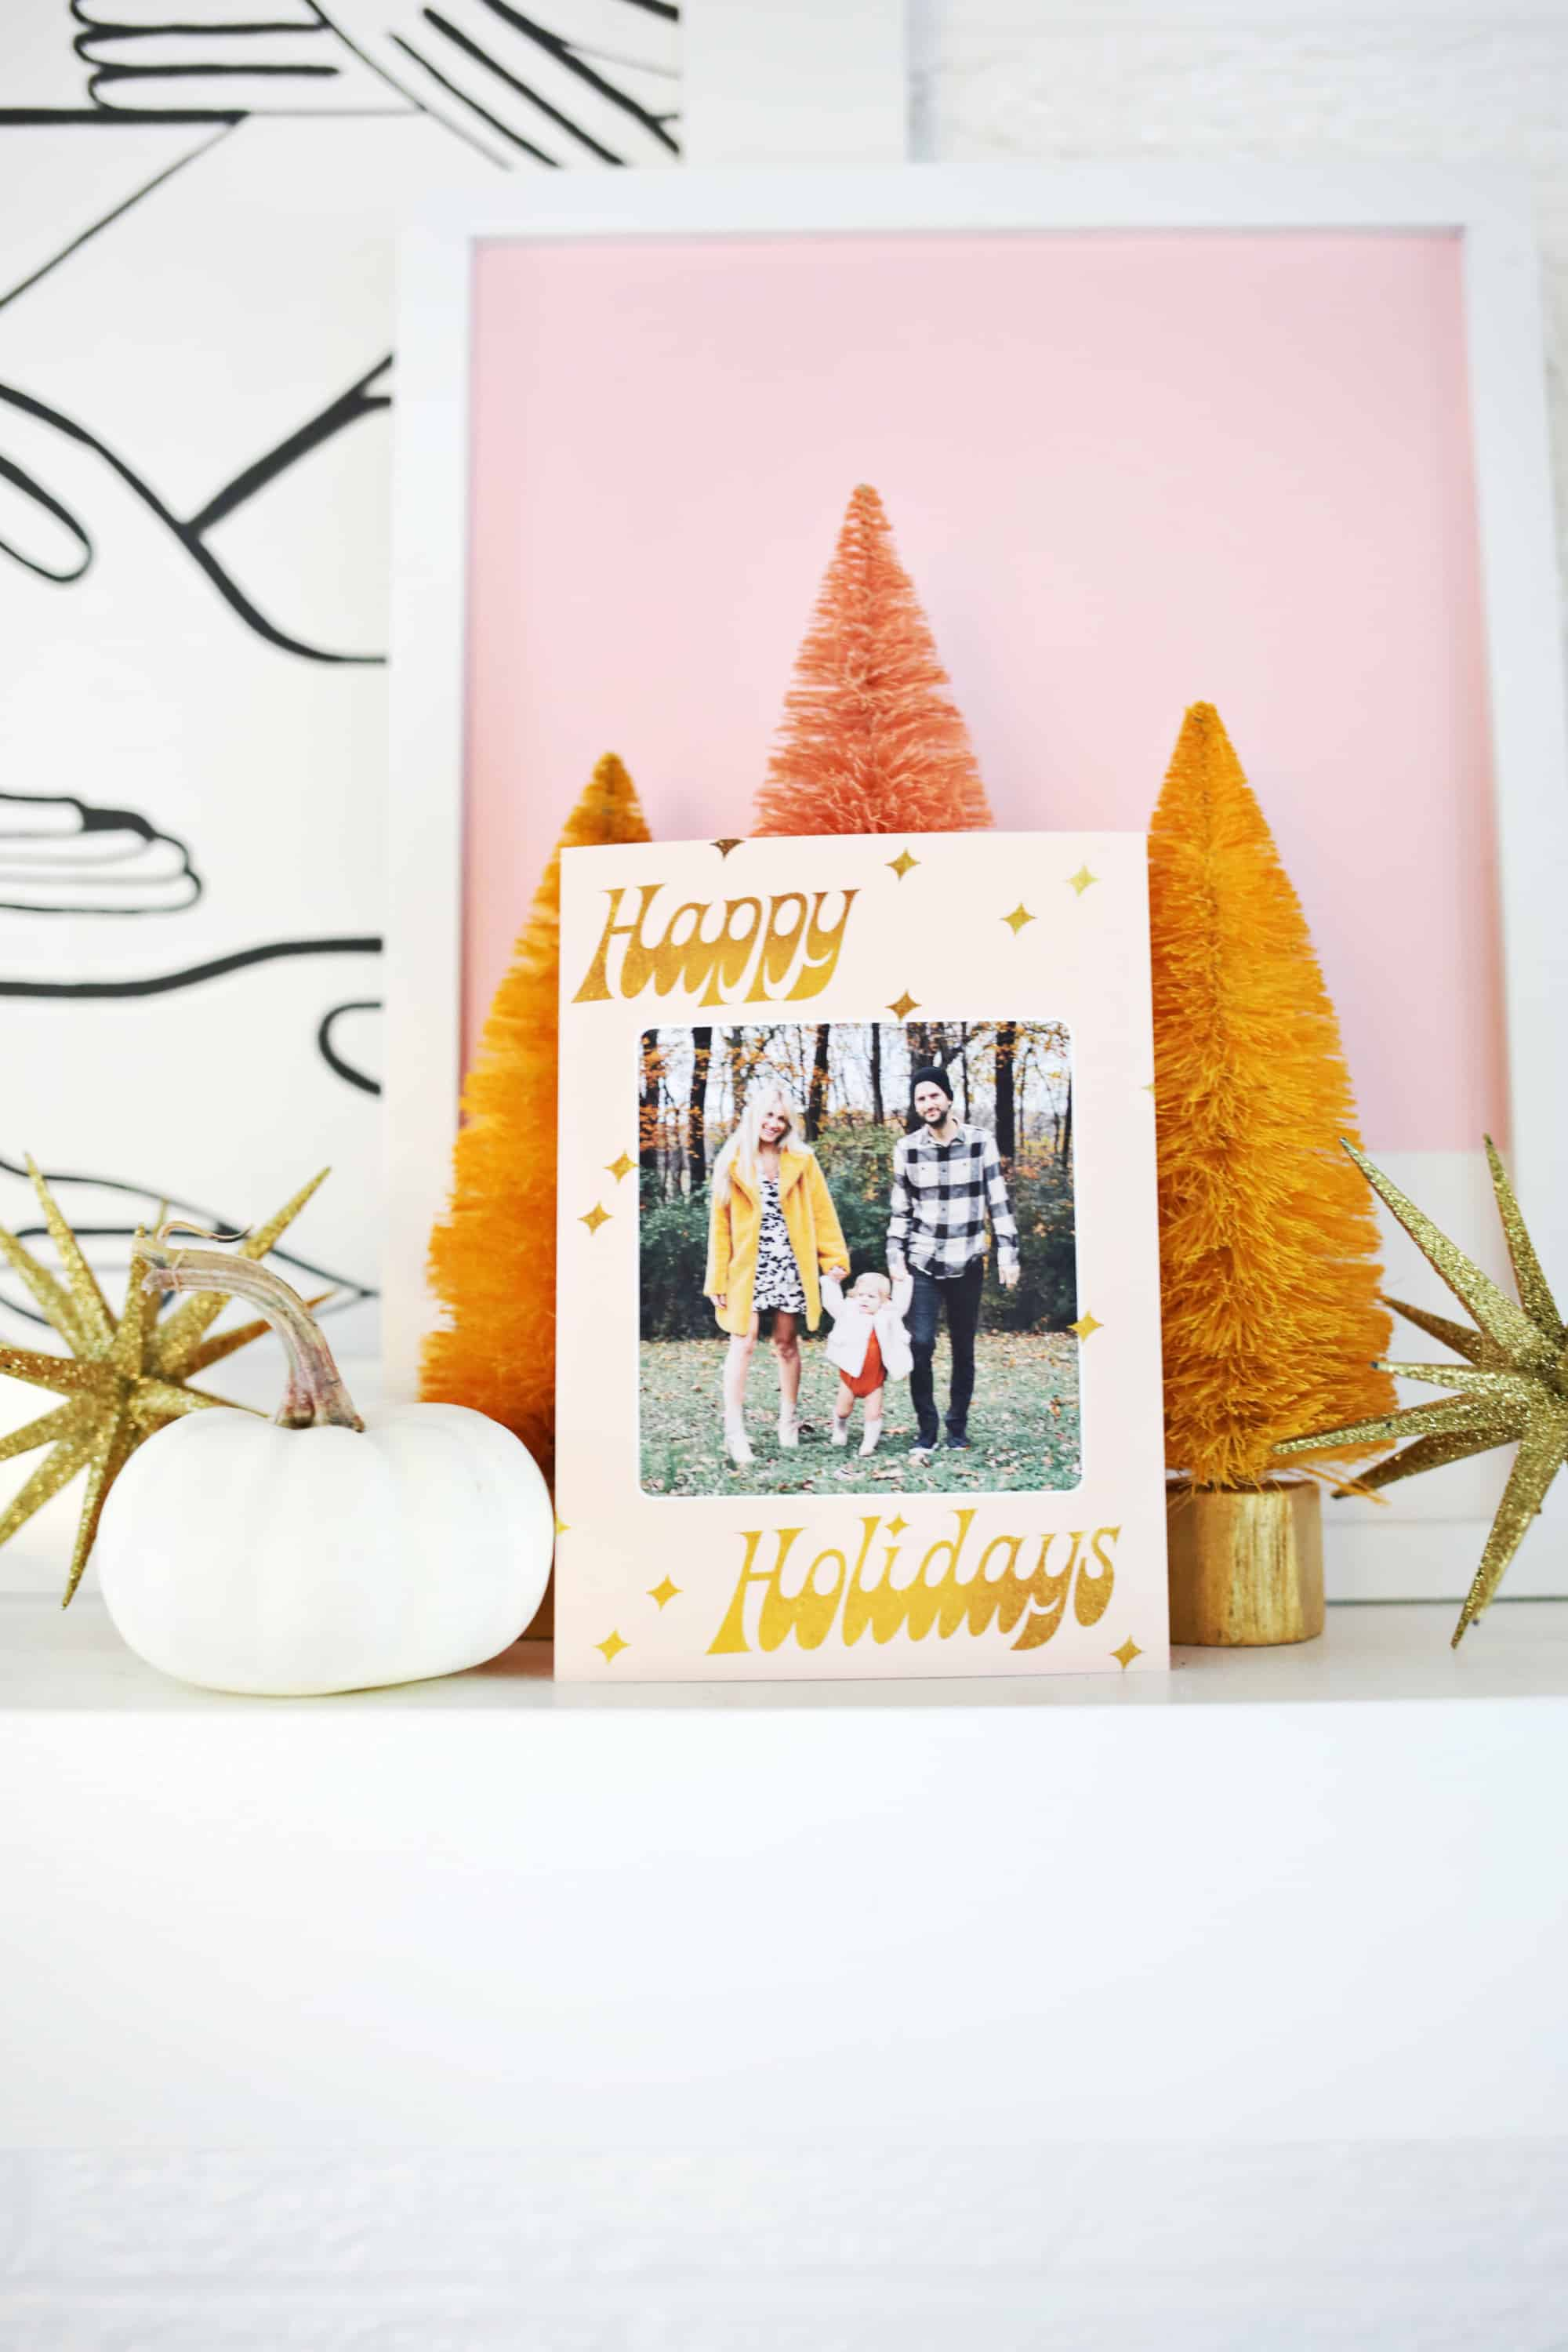 Printing Your Own Christmas Cards.Print Your Own Holiday Cards Free Template Included A